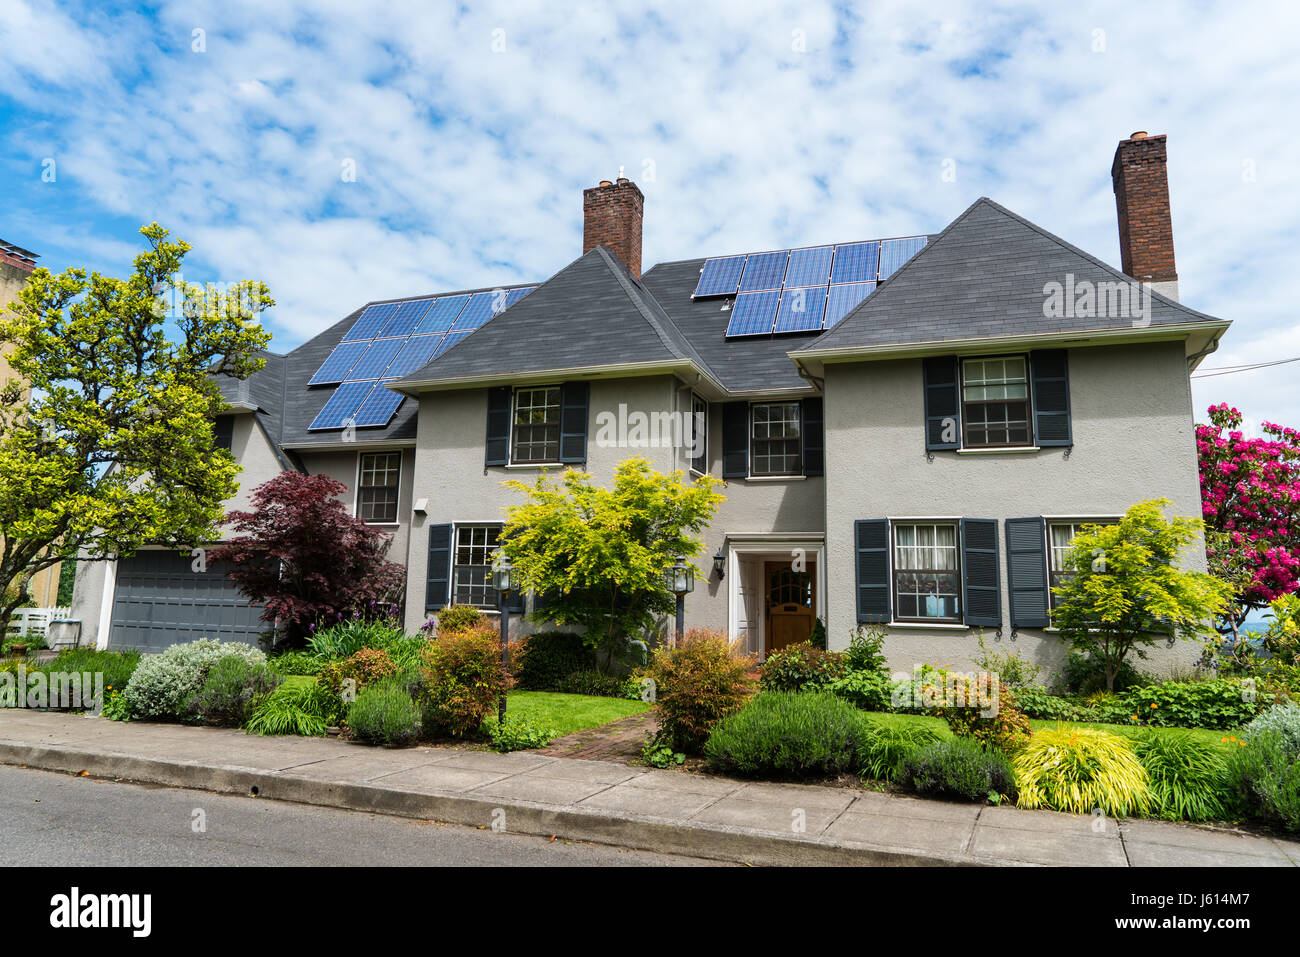 Two-story stucco house with solar panels on the roof and nice landscaping - Stock Image